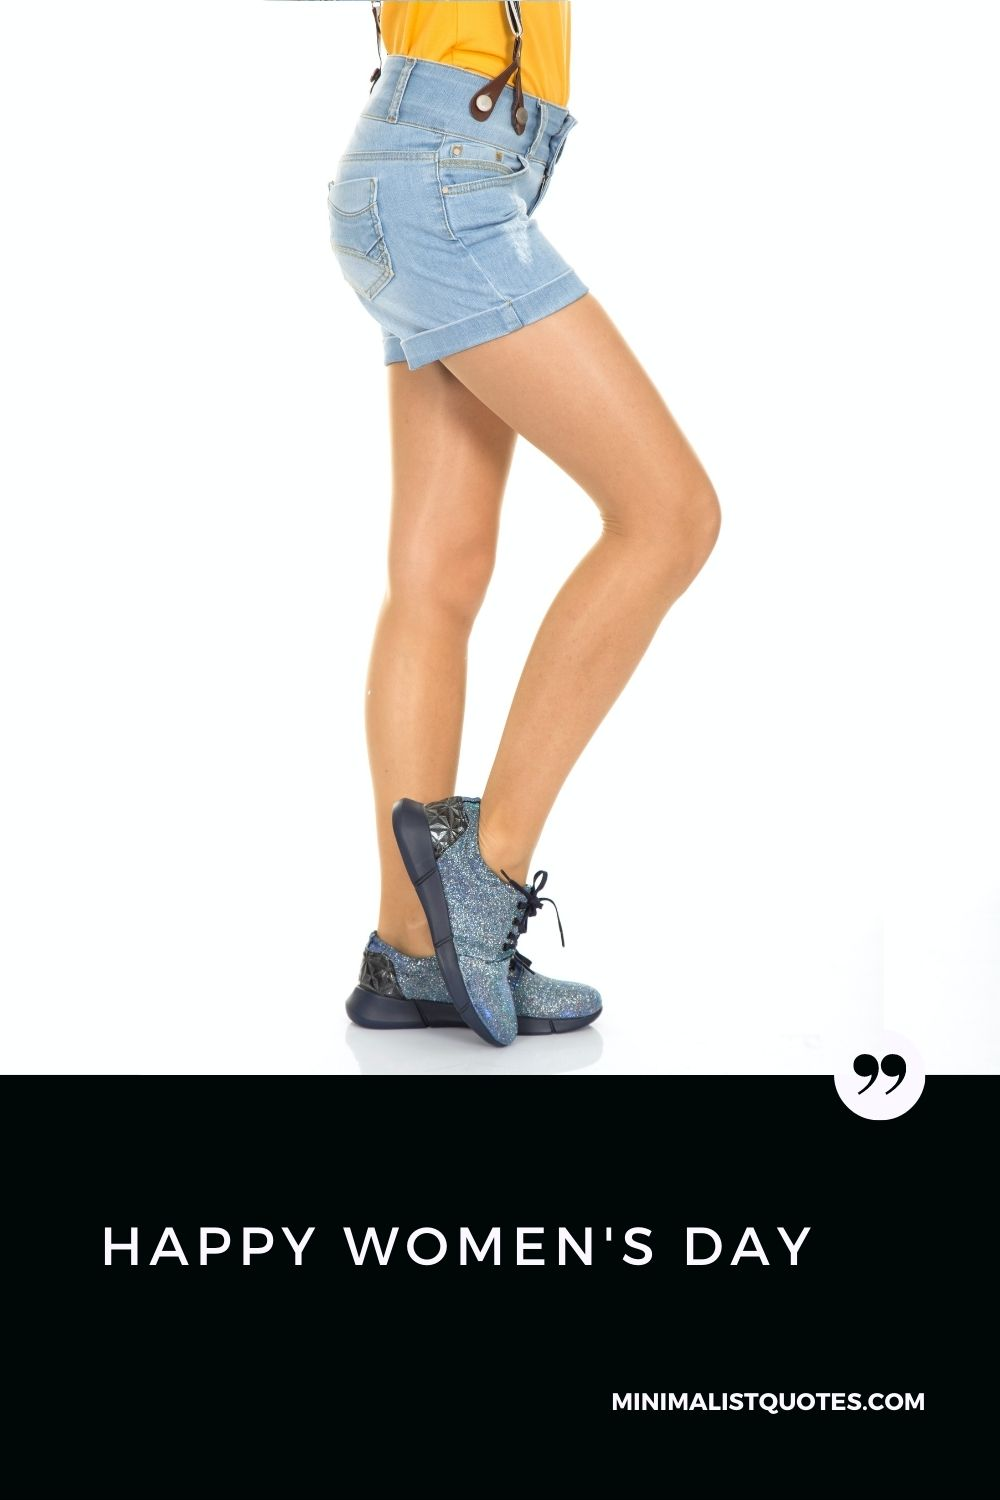 Women's Day wishes, poster & digital cards HD Images: Happy Women's Day #womenstyle